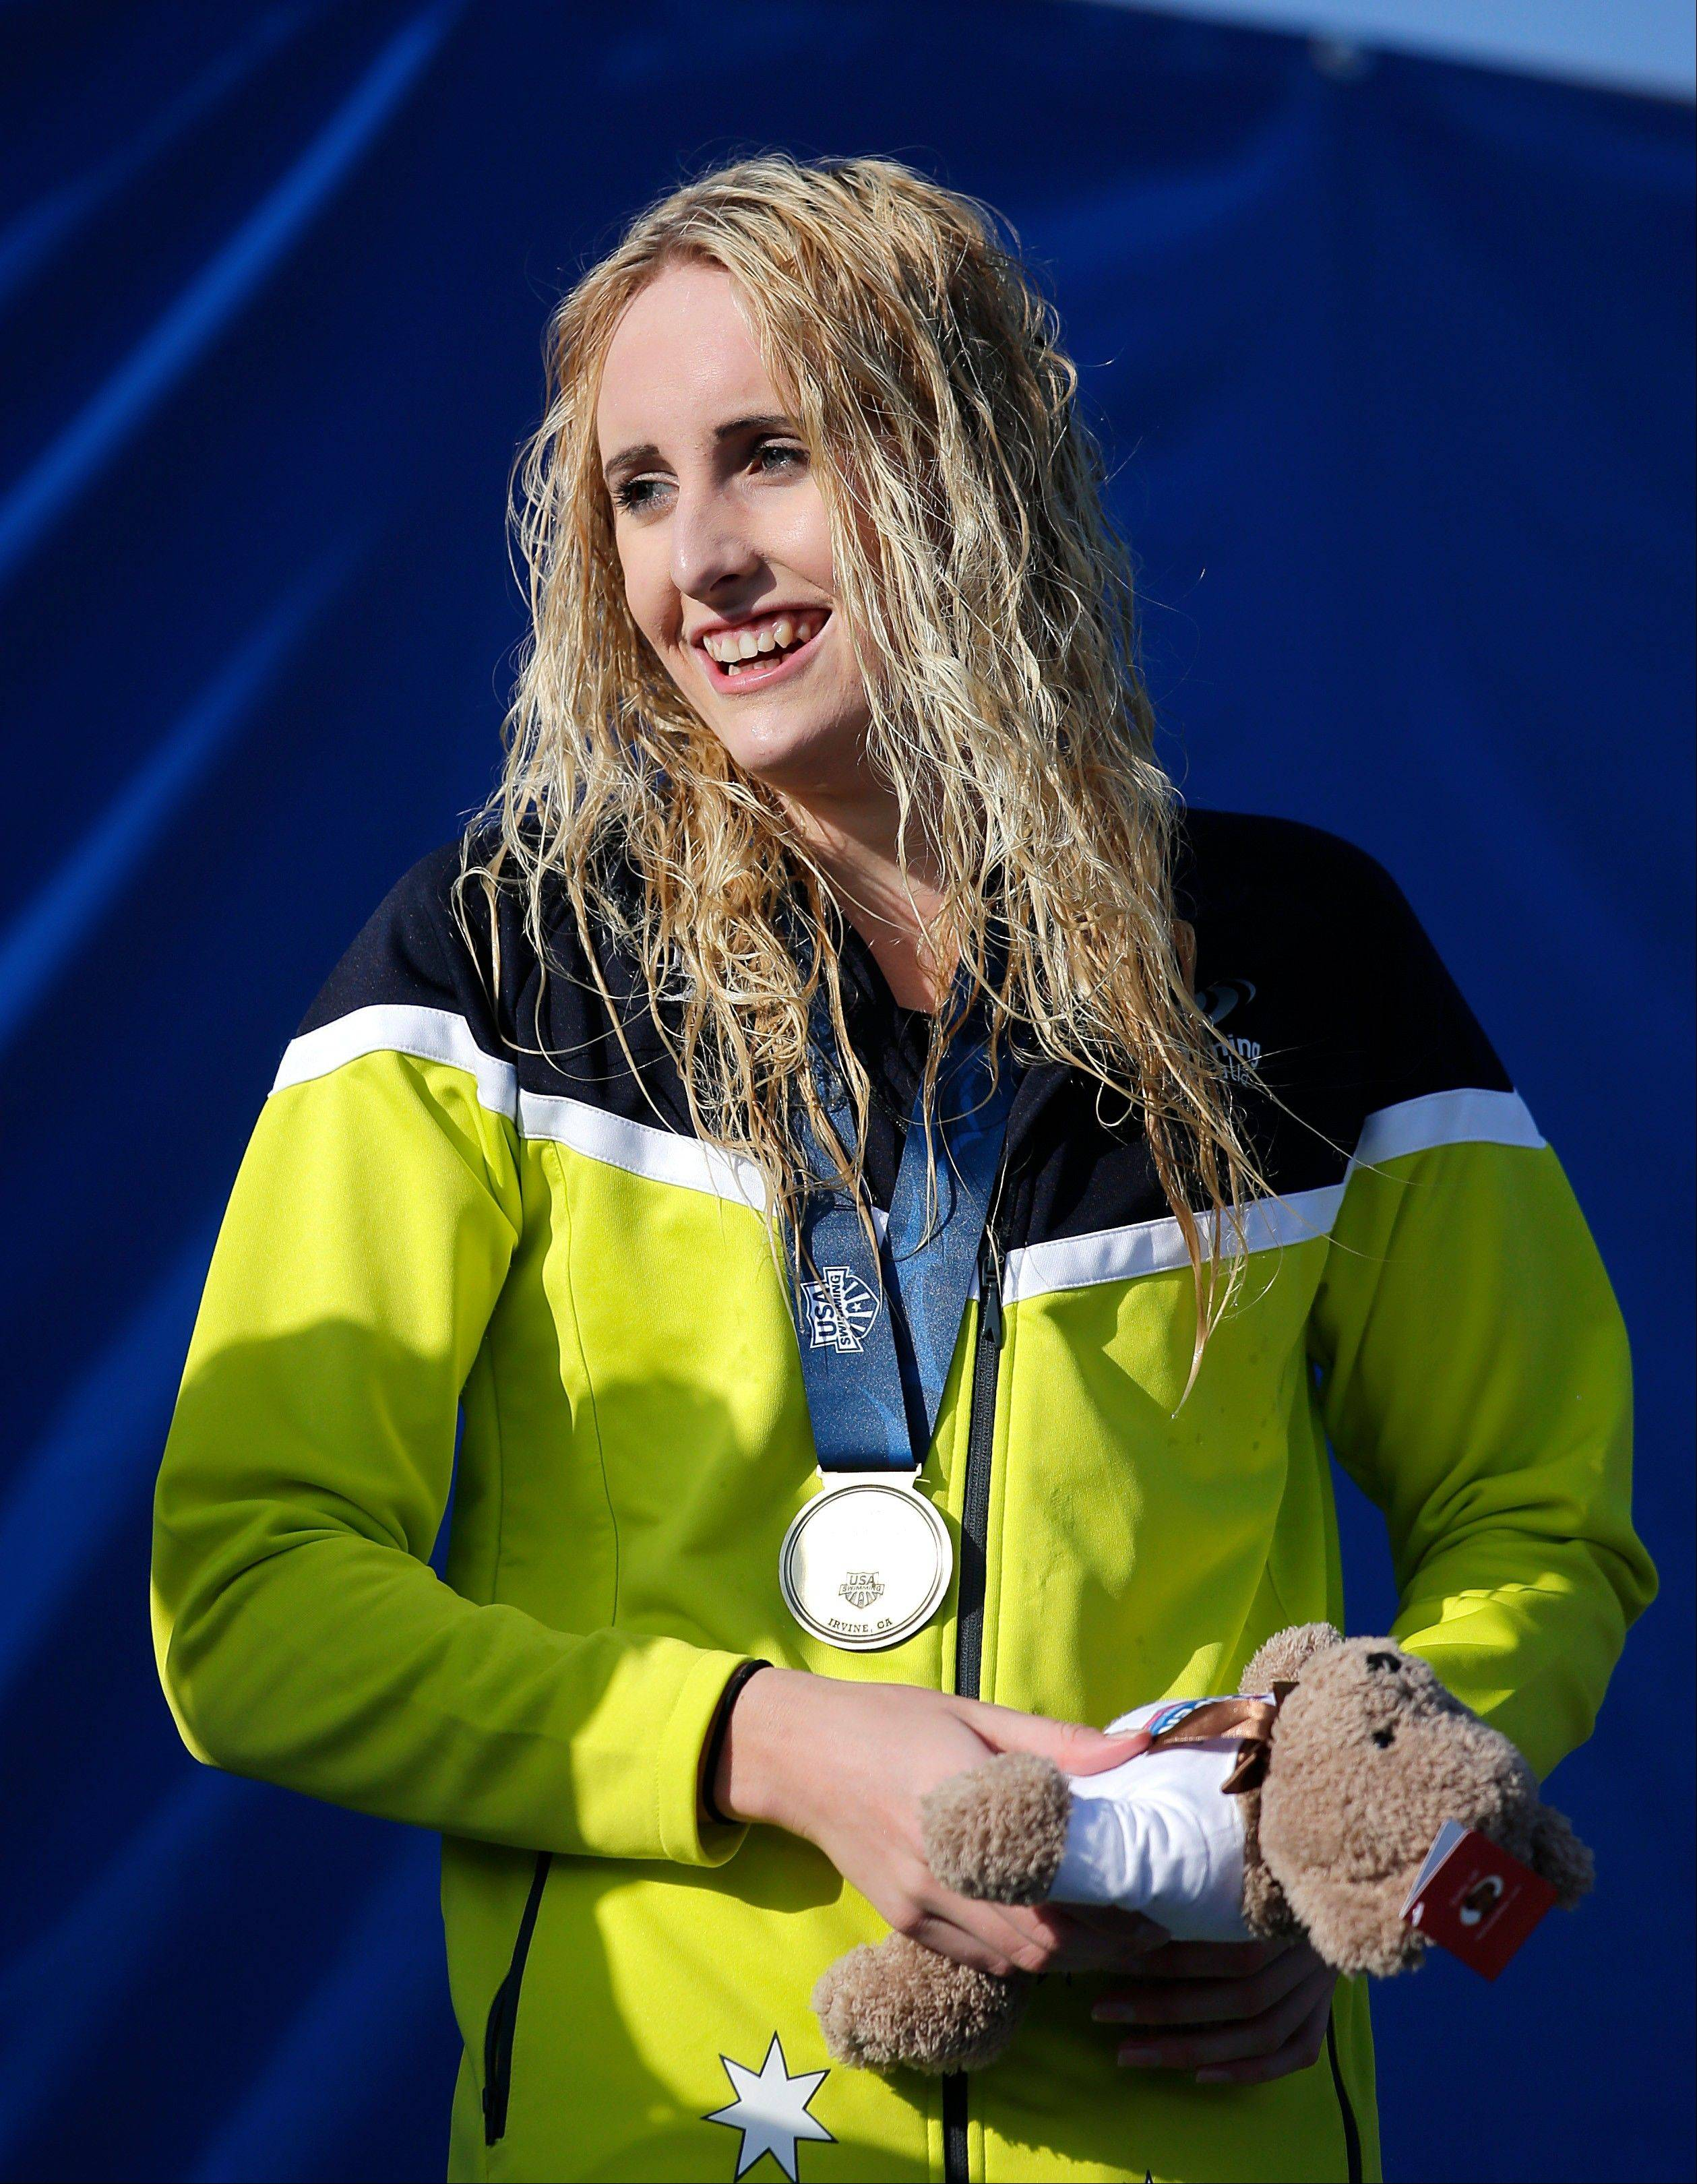 Gold medalist Taylor McKeown, of Australia, smiles during an awards ceremony for the women's 200-meter breaststroke final at the U.S. Open Swimming Championships, Wednesday, July 31, 2013, in Irvine, Calif. (AP Photo/Jae C. Hong)